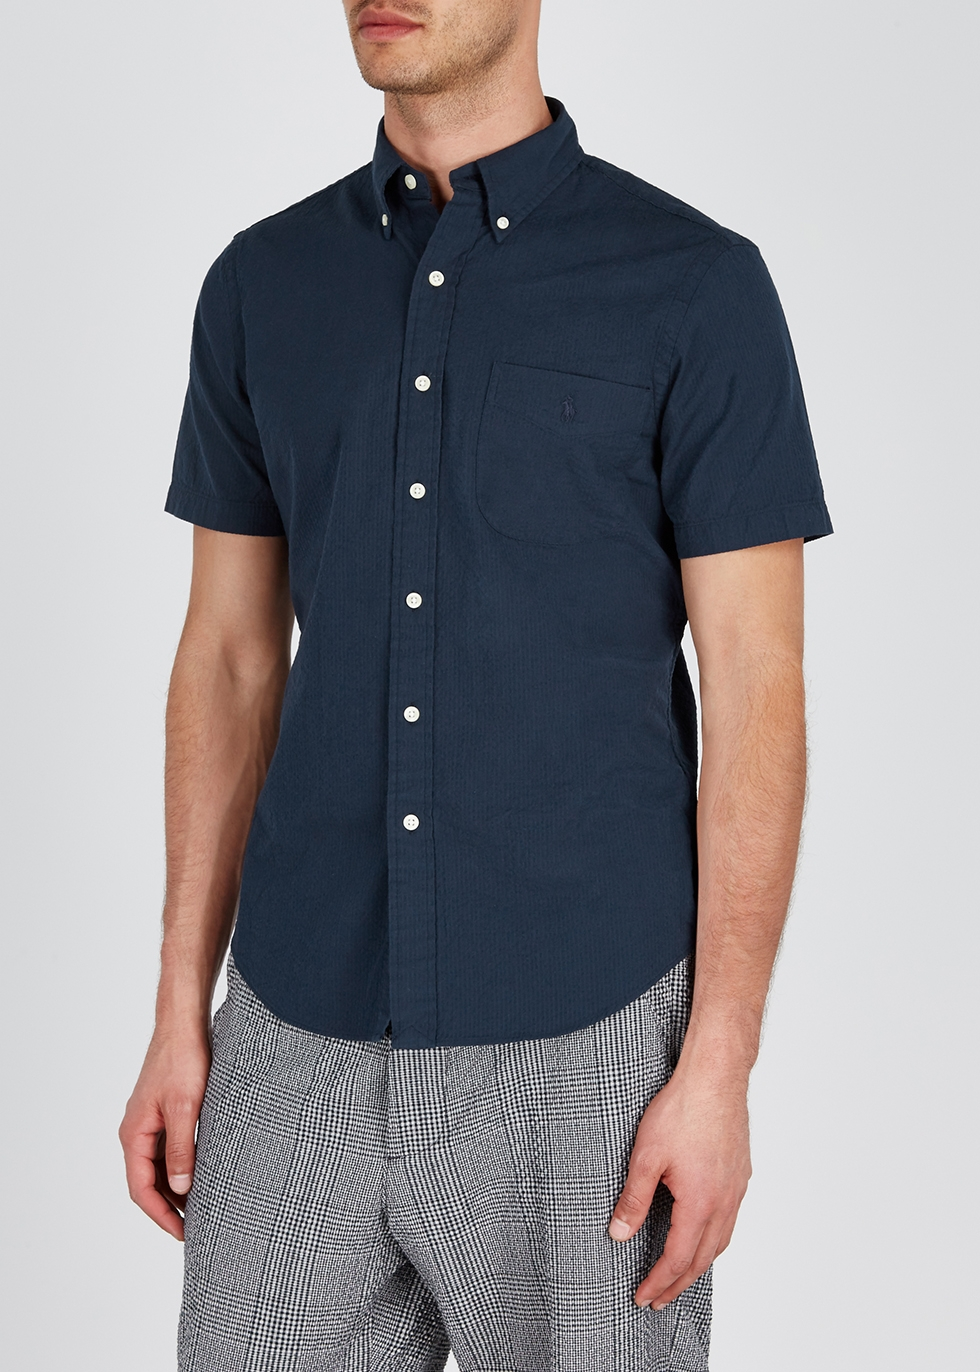 Navy cotton seersucker shirt - Polo Ralph Lauren